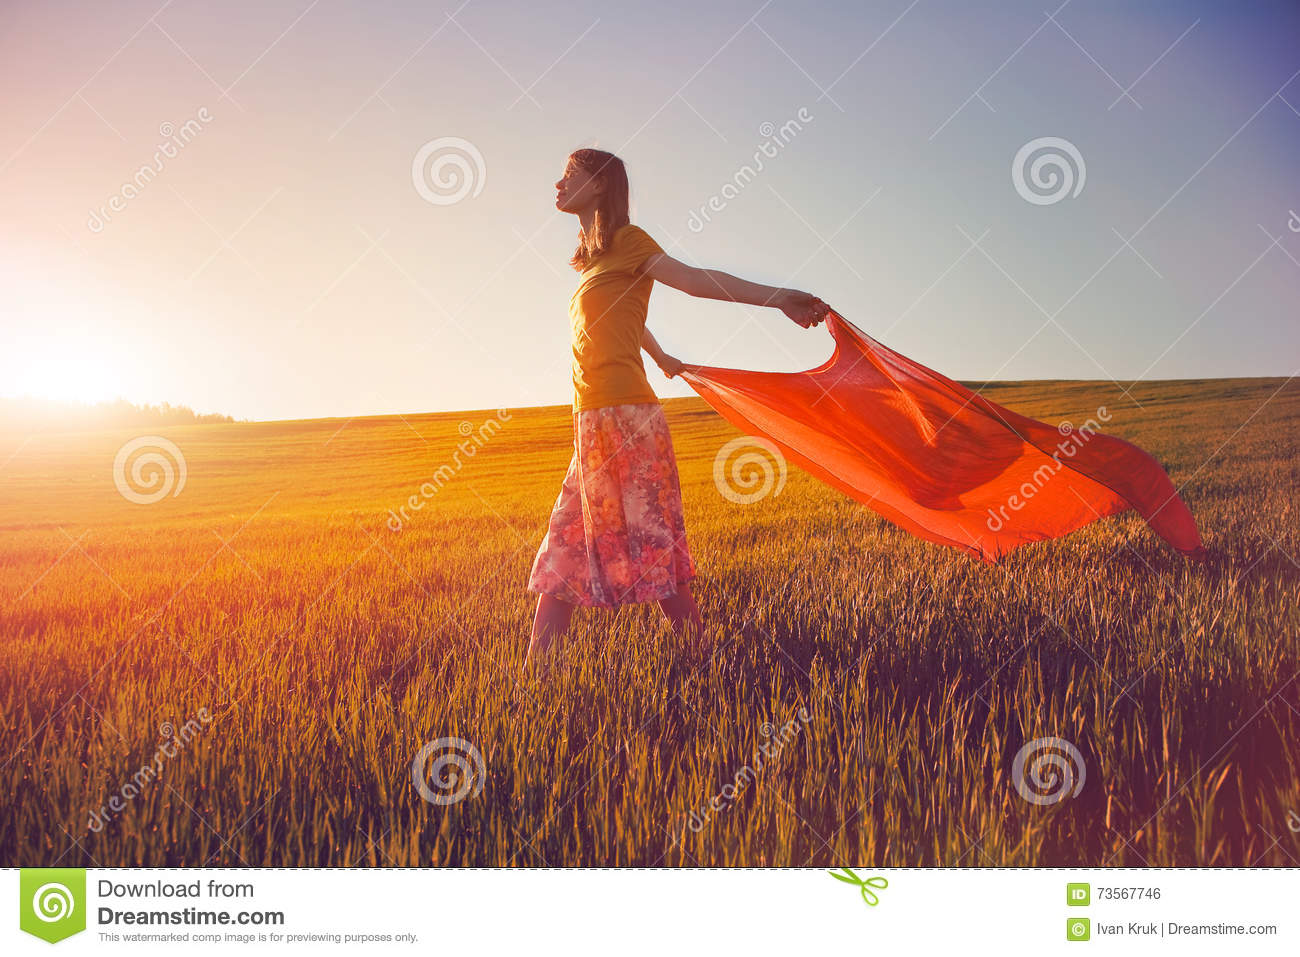 NewsFix posters as fictional characters  Girl-looking-sunrise-magical-tissue-as-inspiration-73567746